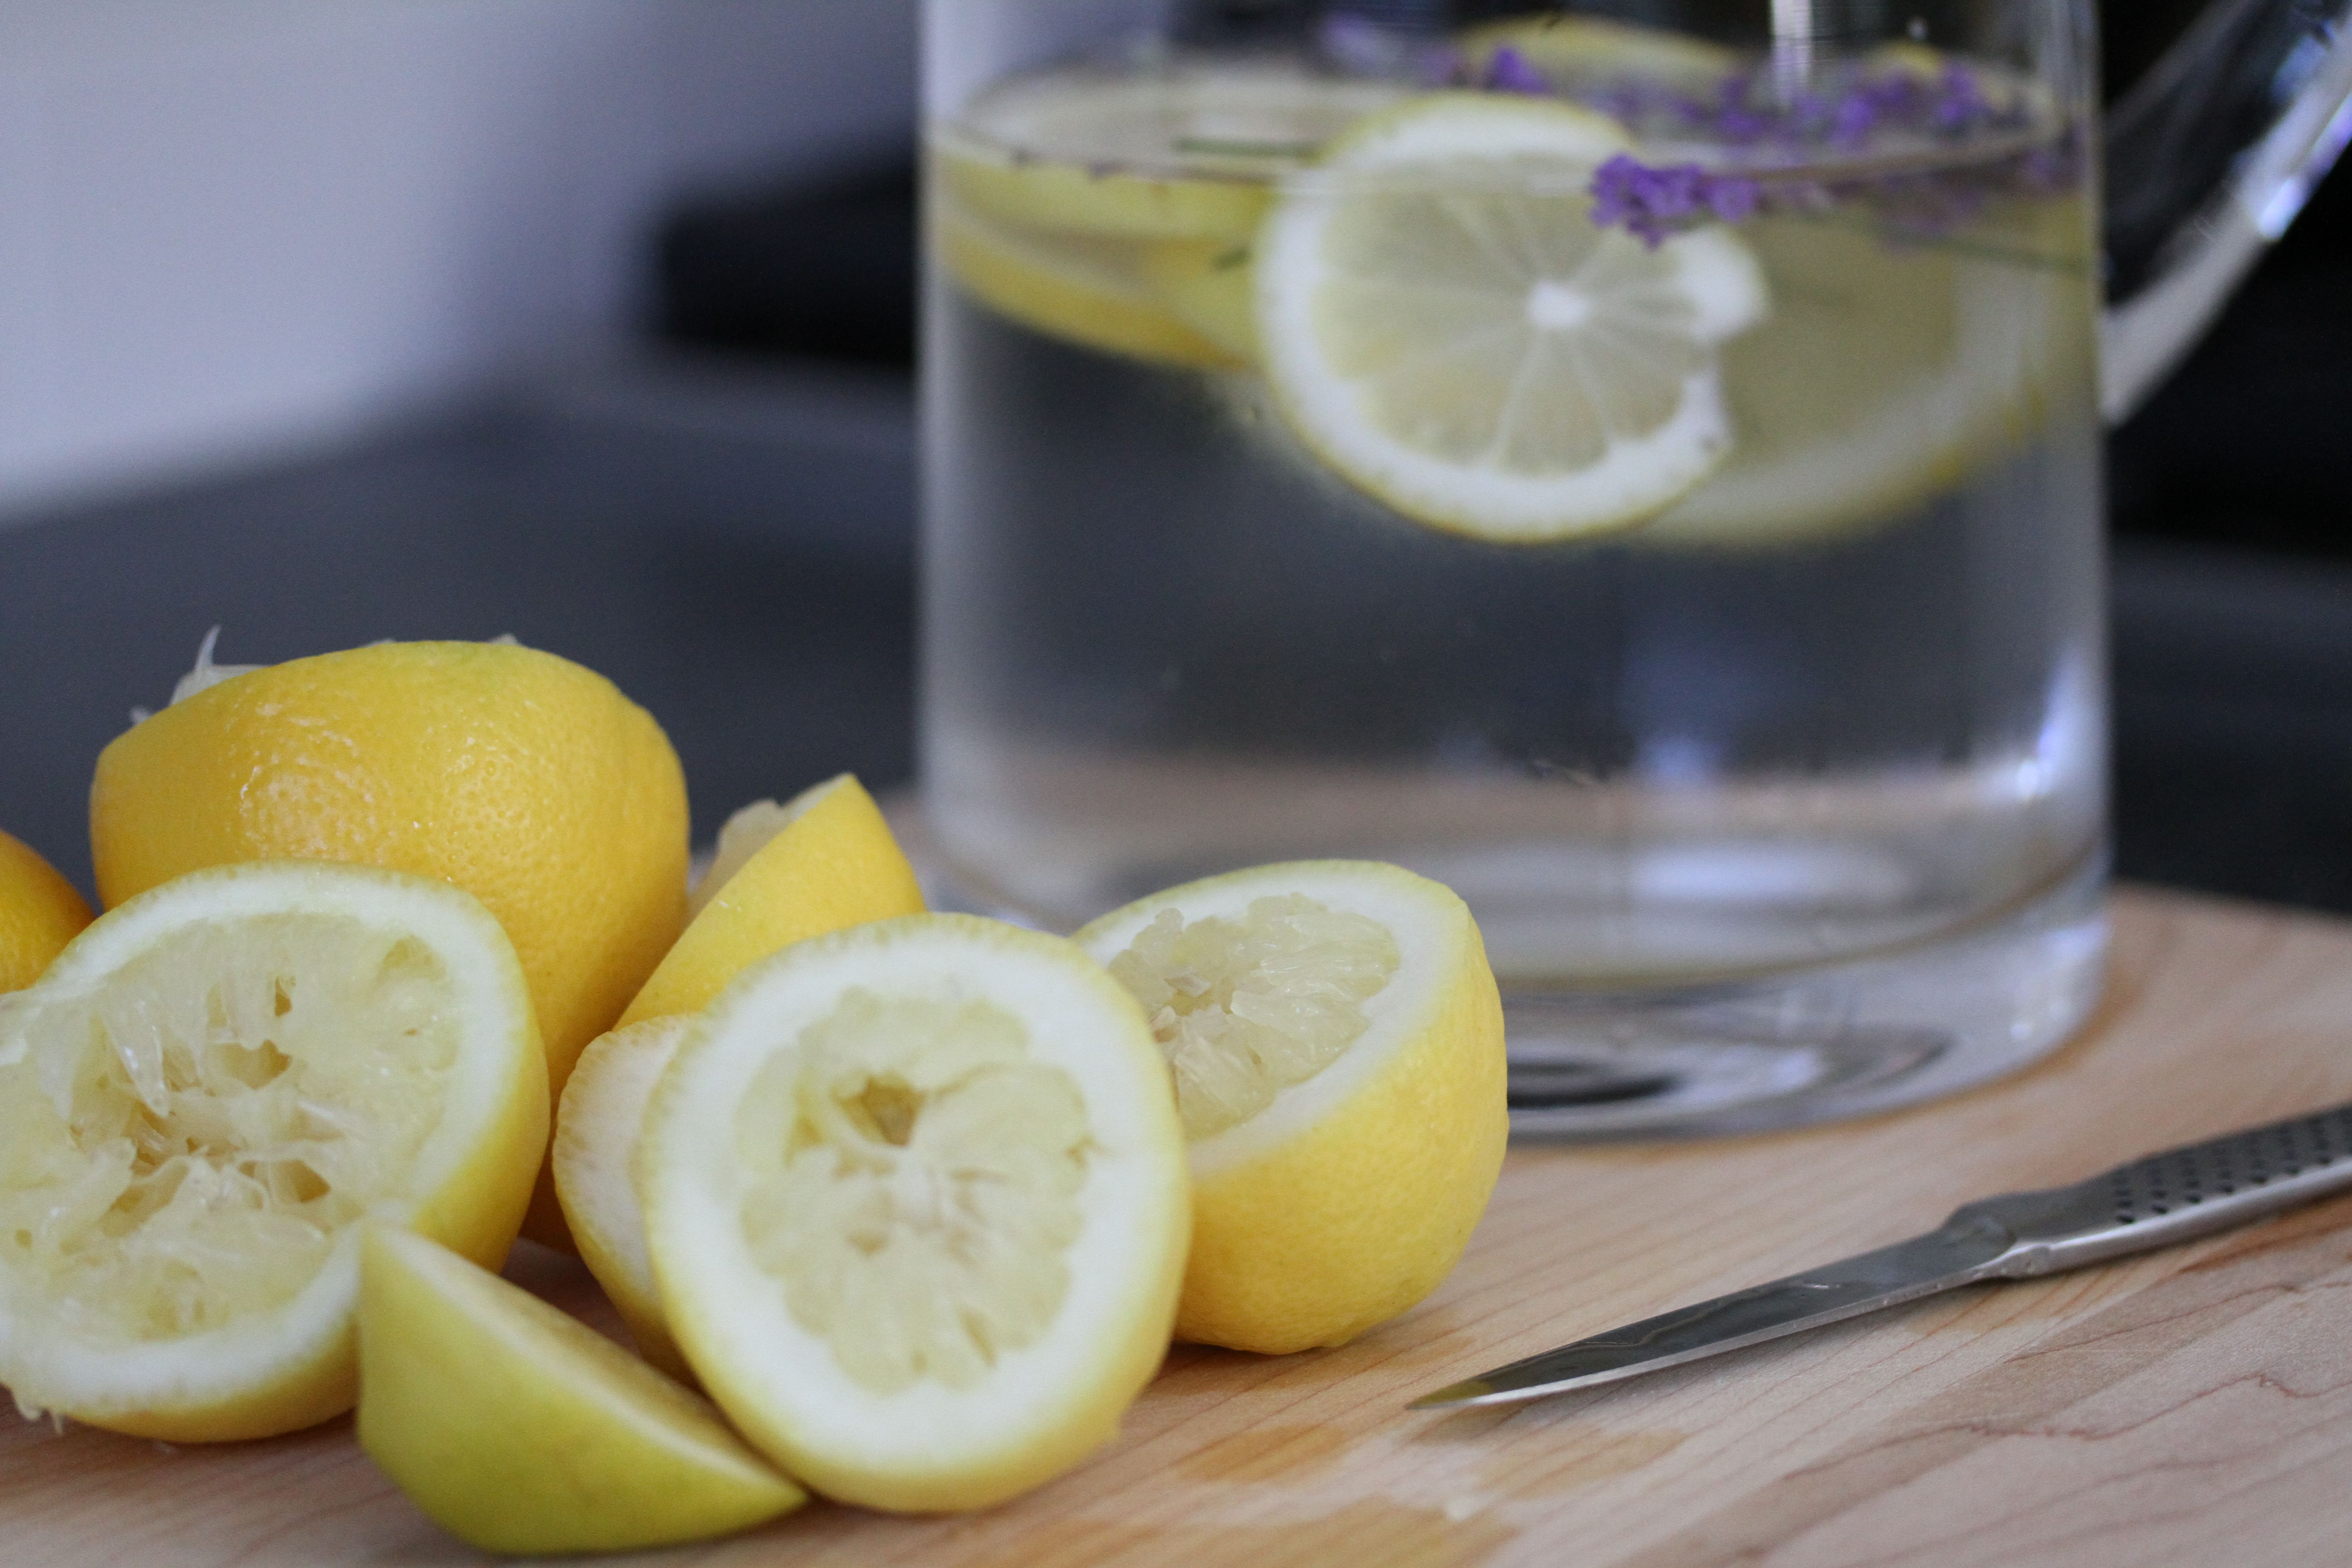 Toss the blossoms and slices into the water. You can see my lemons were not as juicy as I'd have liked.